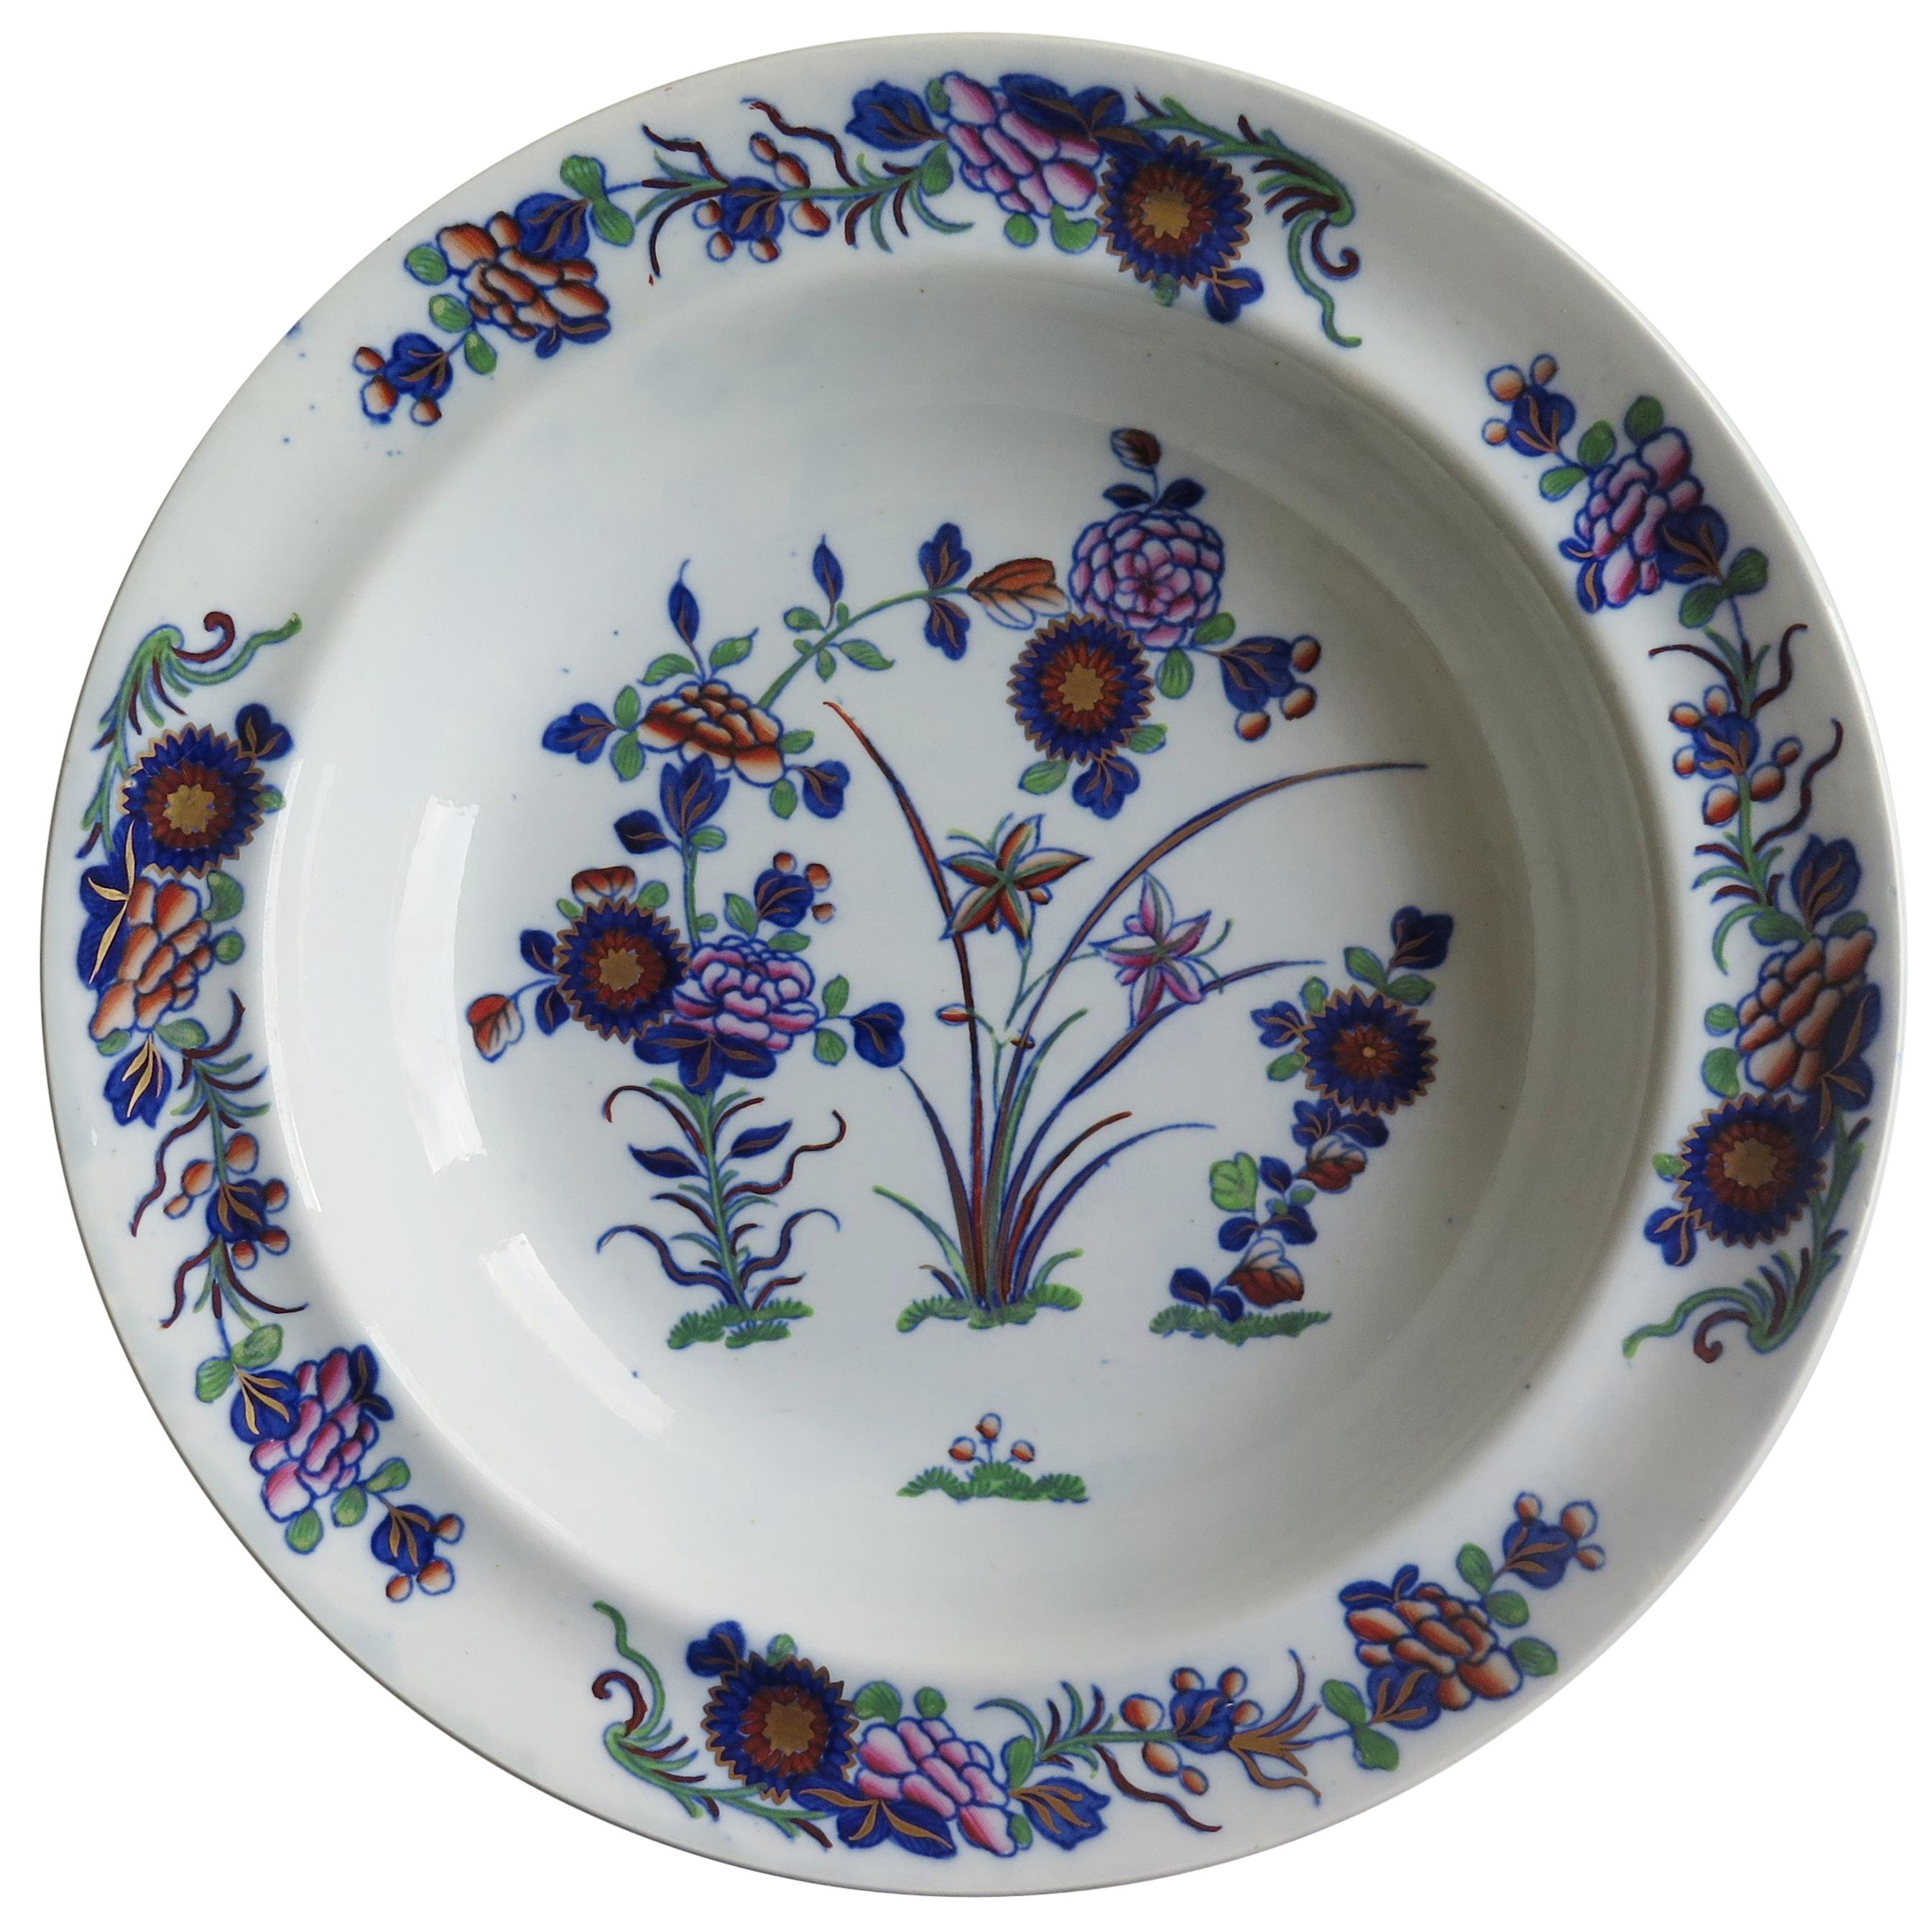 Georgian Spode Soup Bowl or Plate in Chinese Flowers Pattern, circa 1820